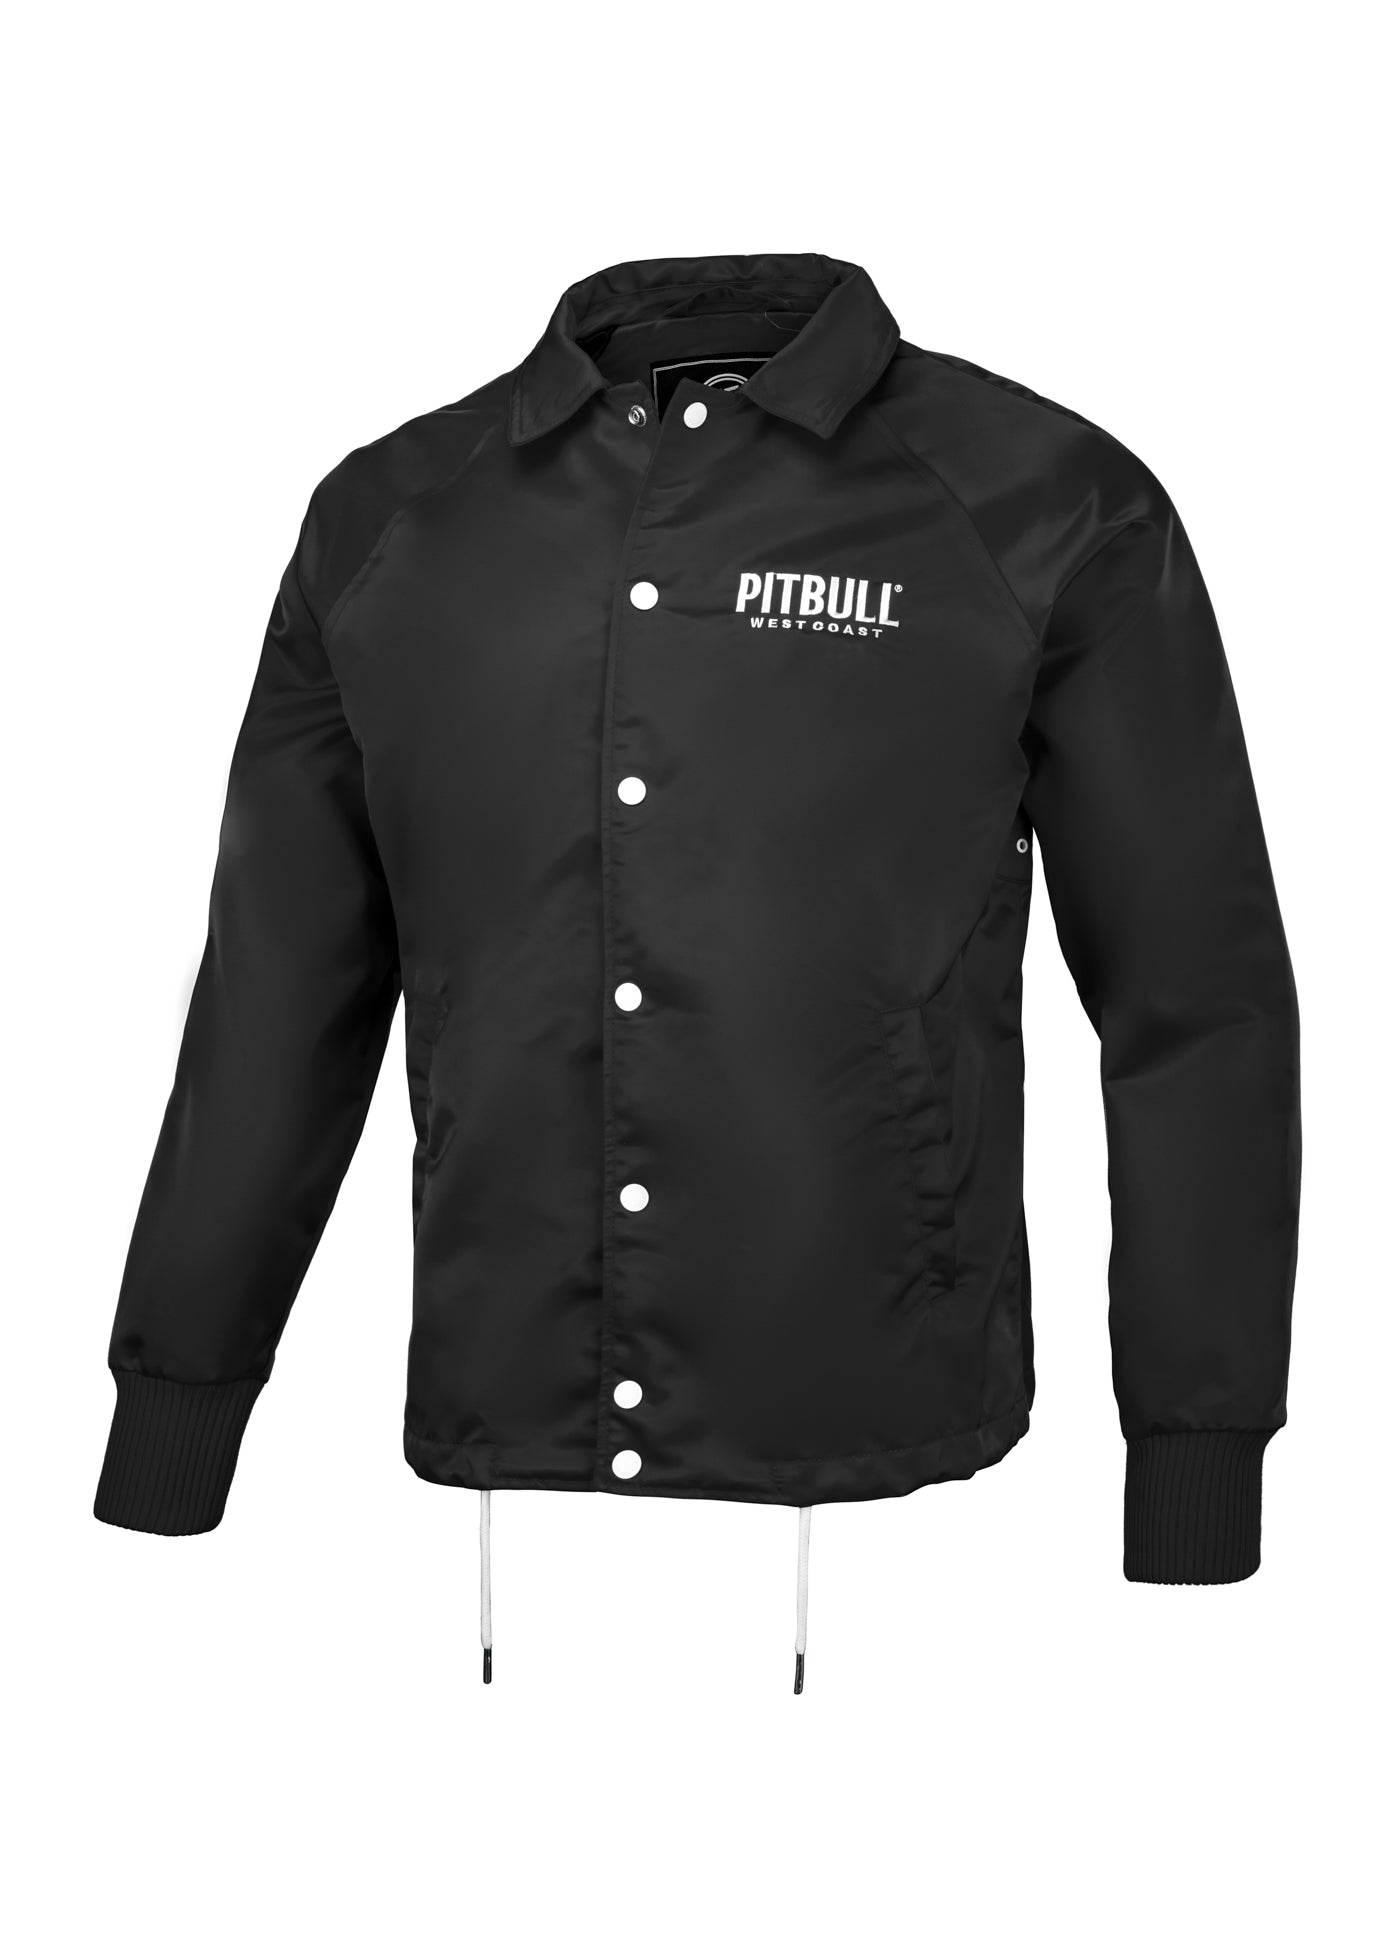 WICK Coach Jacket Black - pitbullwestcoast